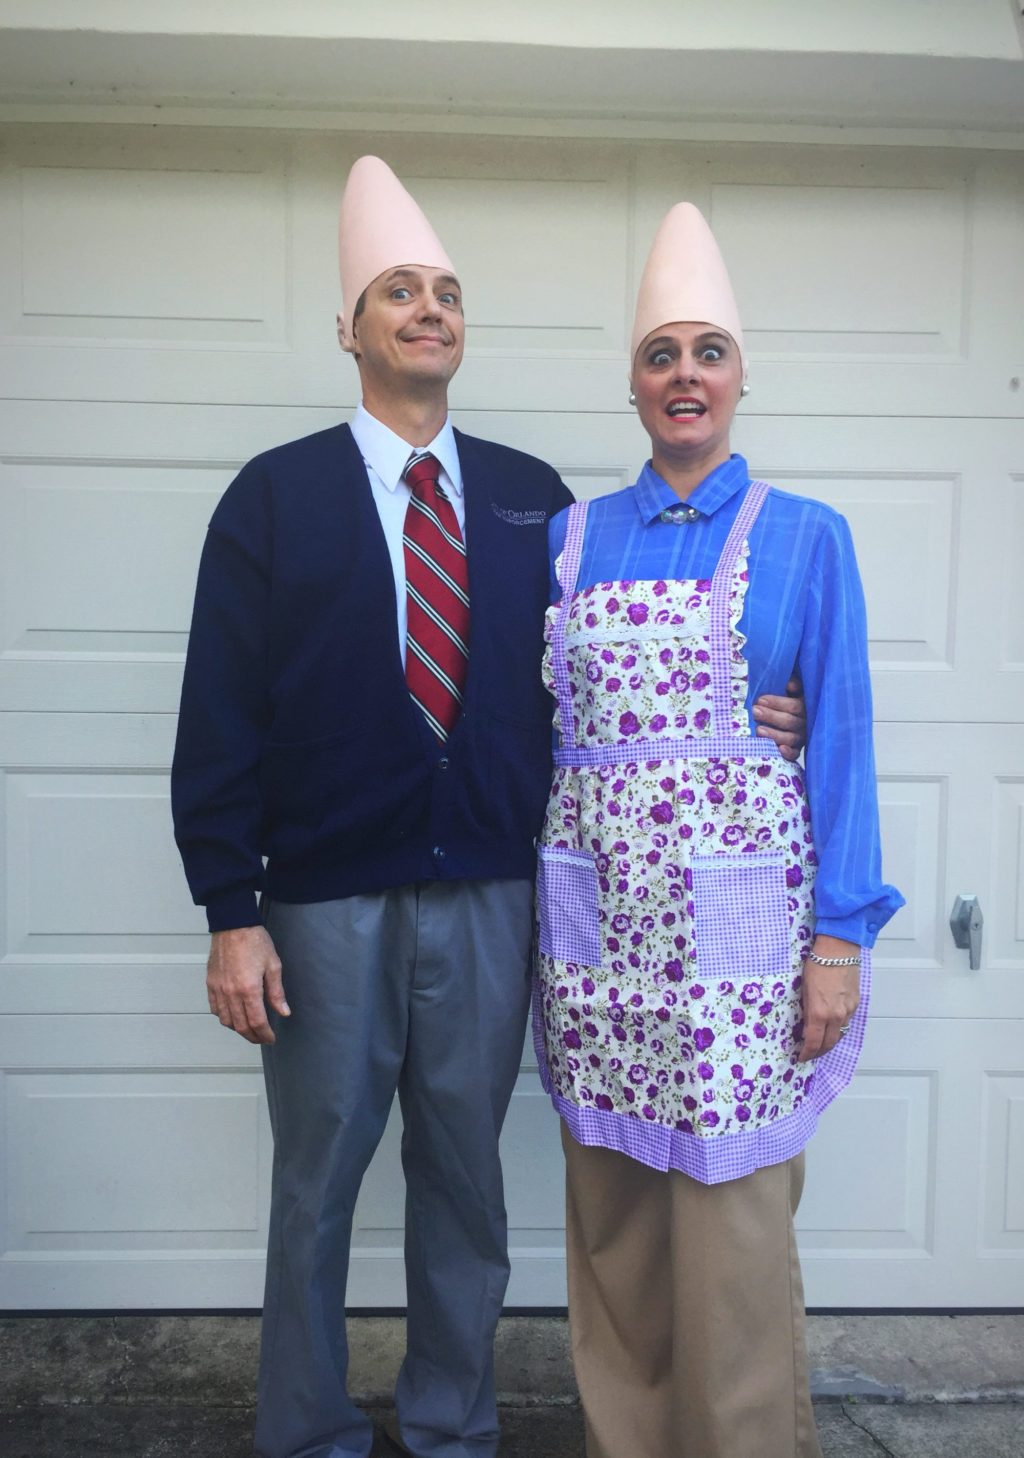 The Coneheads Halloween Costume Contest 2018